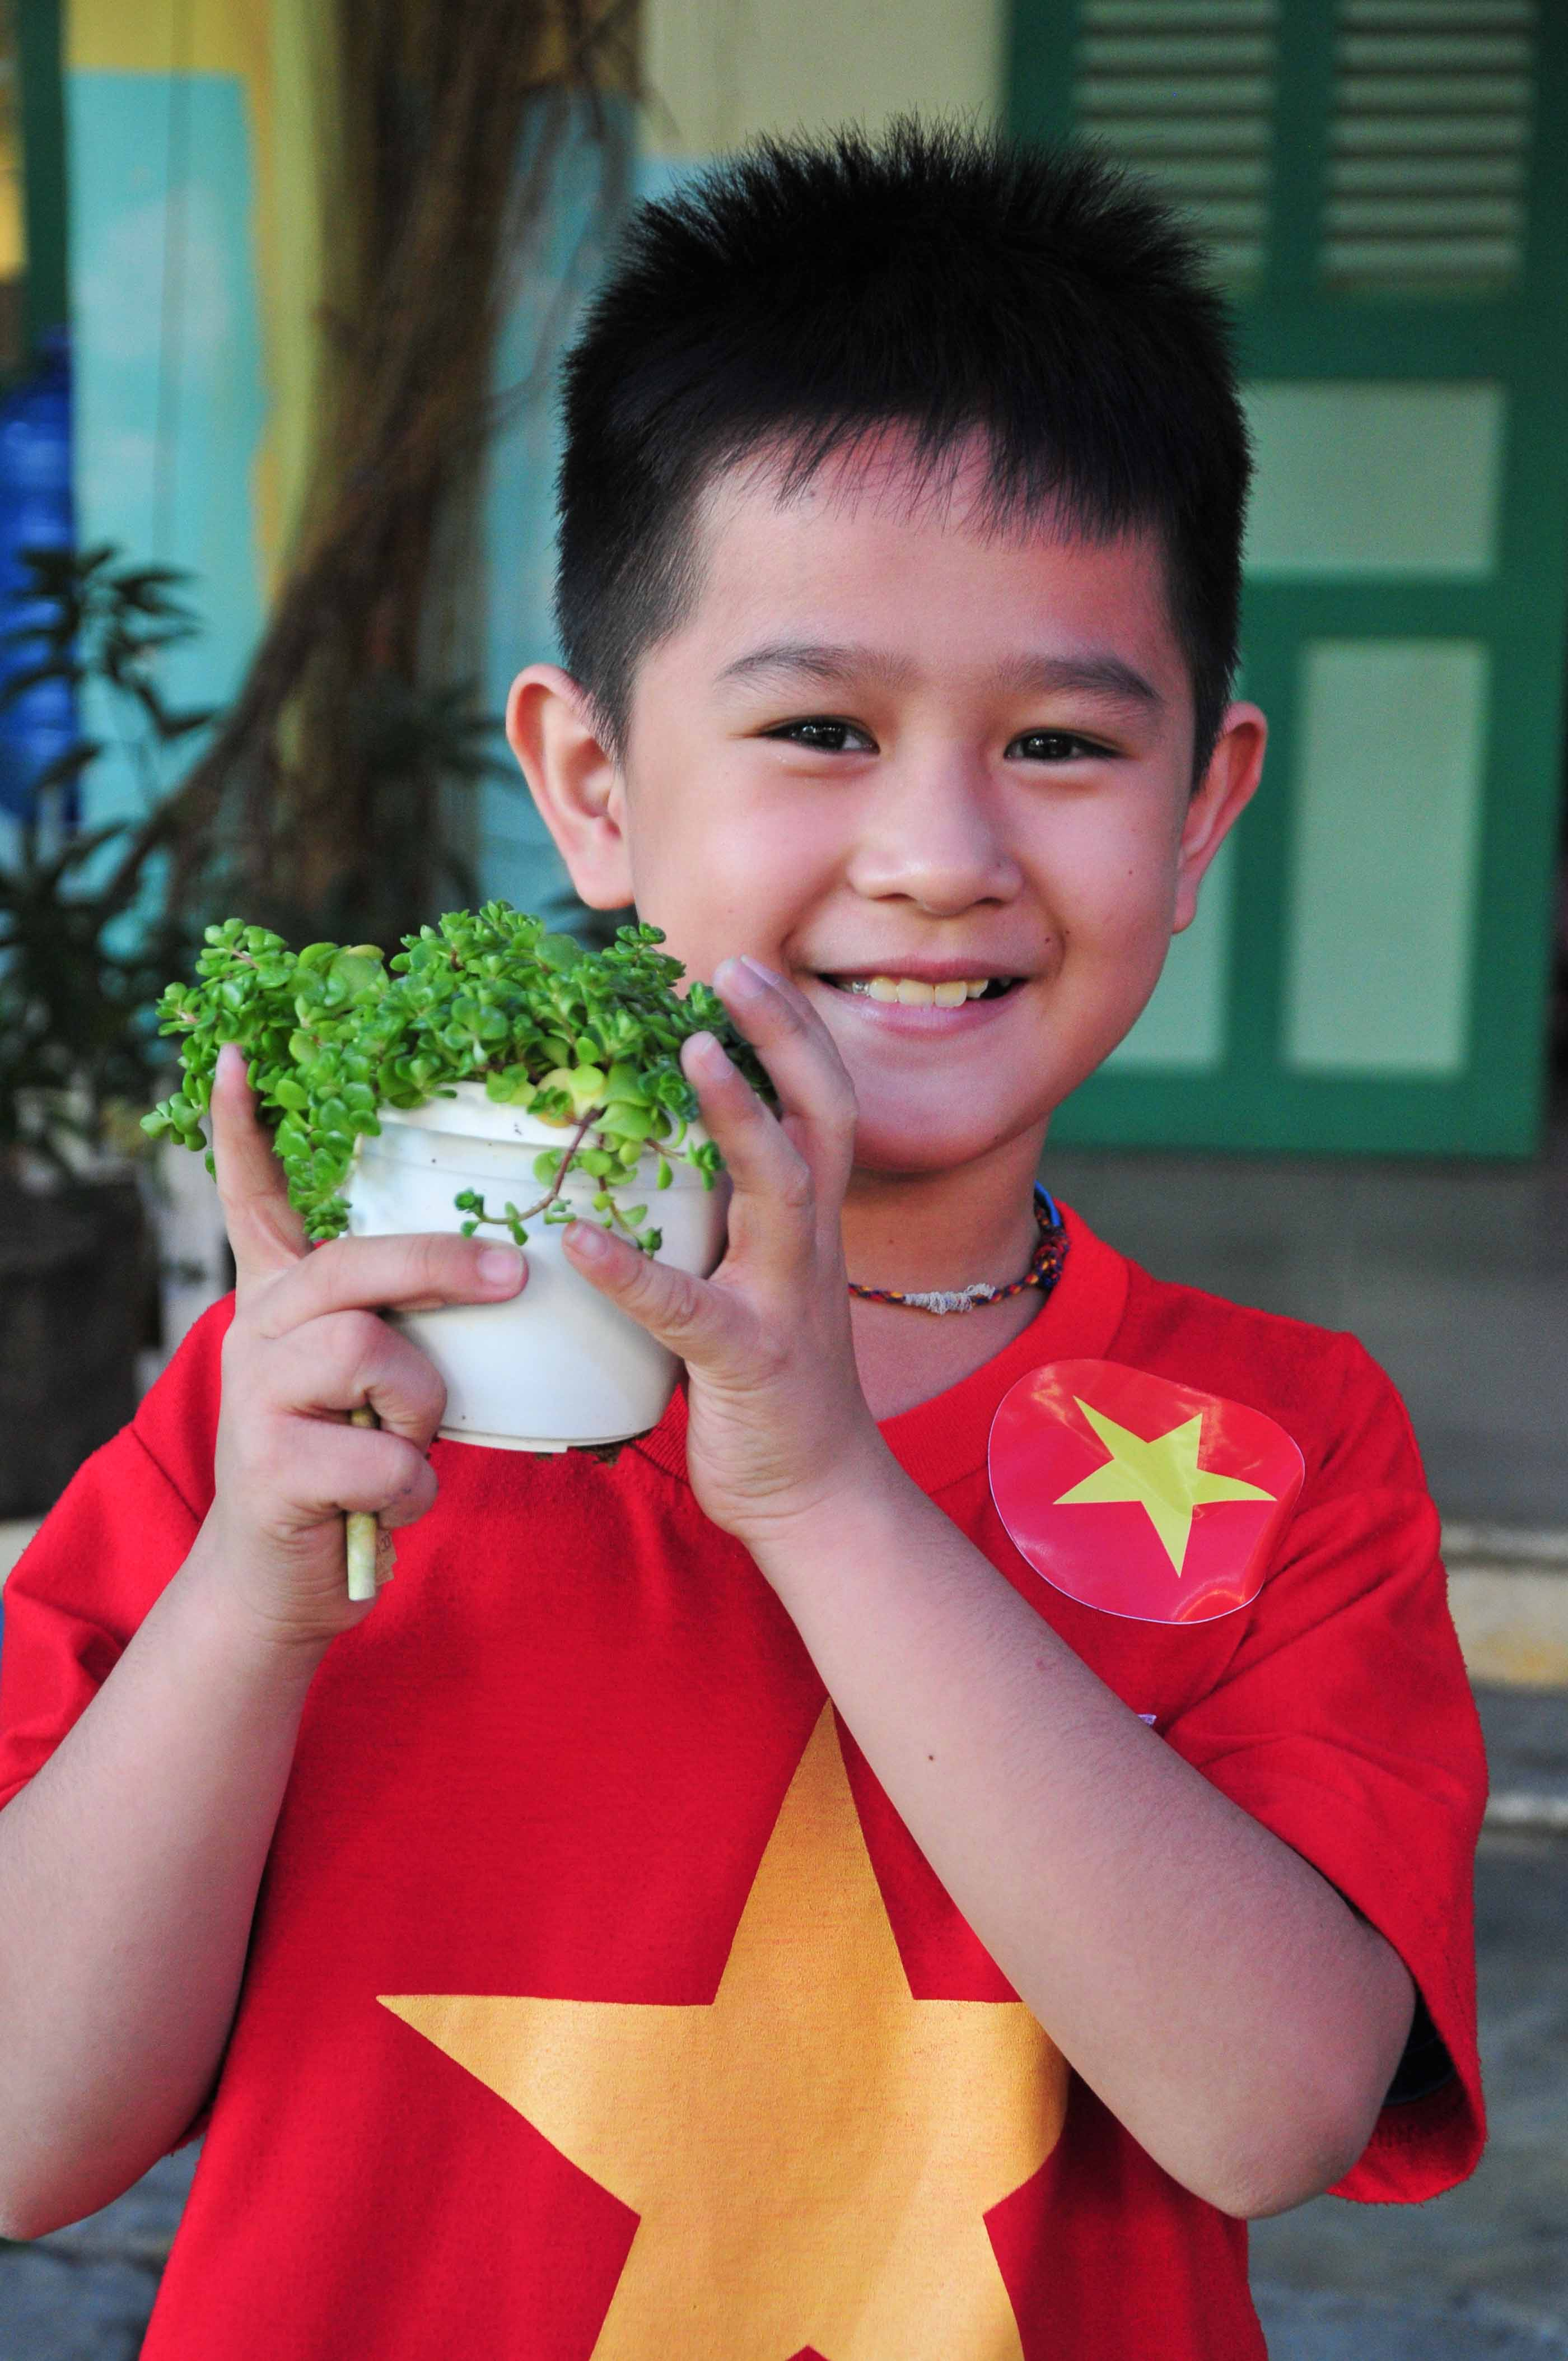 A pupil is happy with his ornamental plant